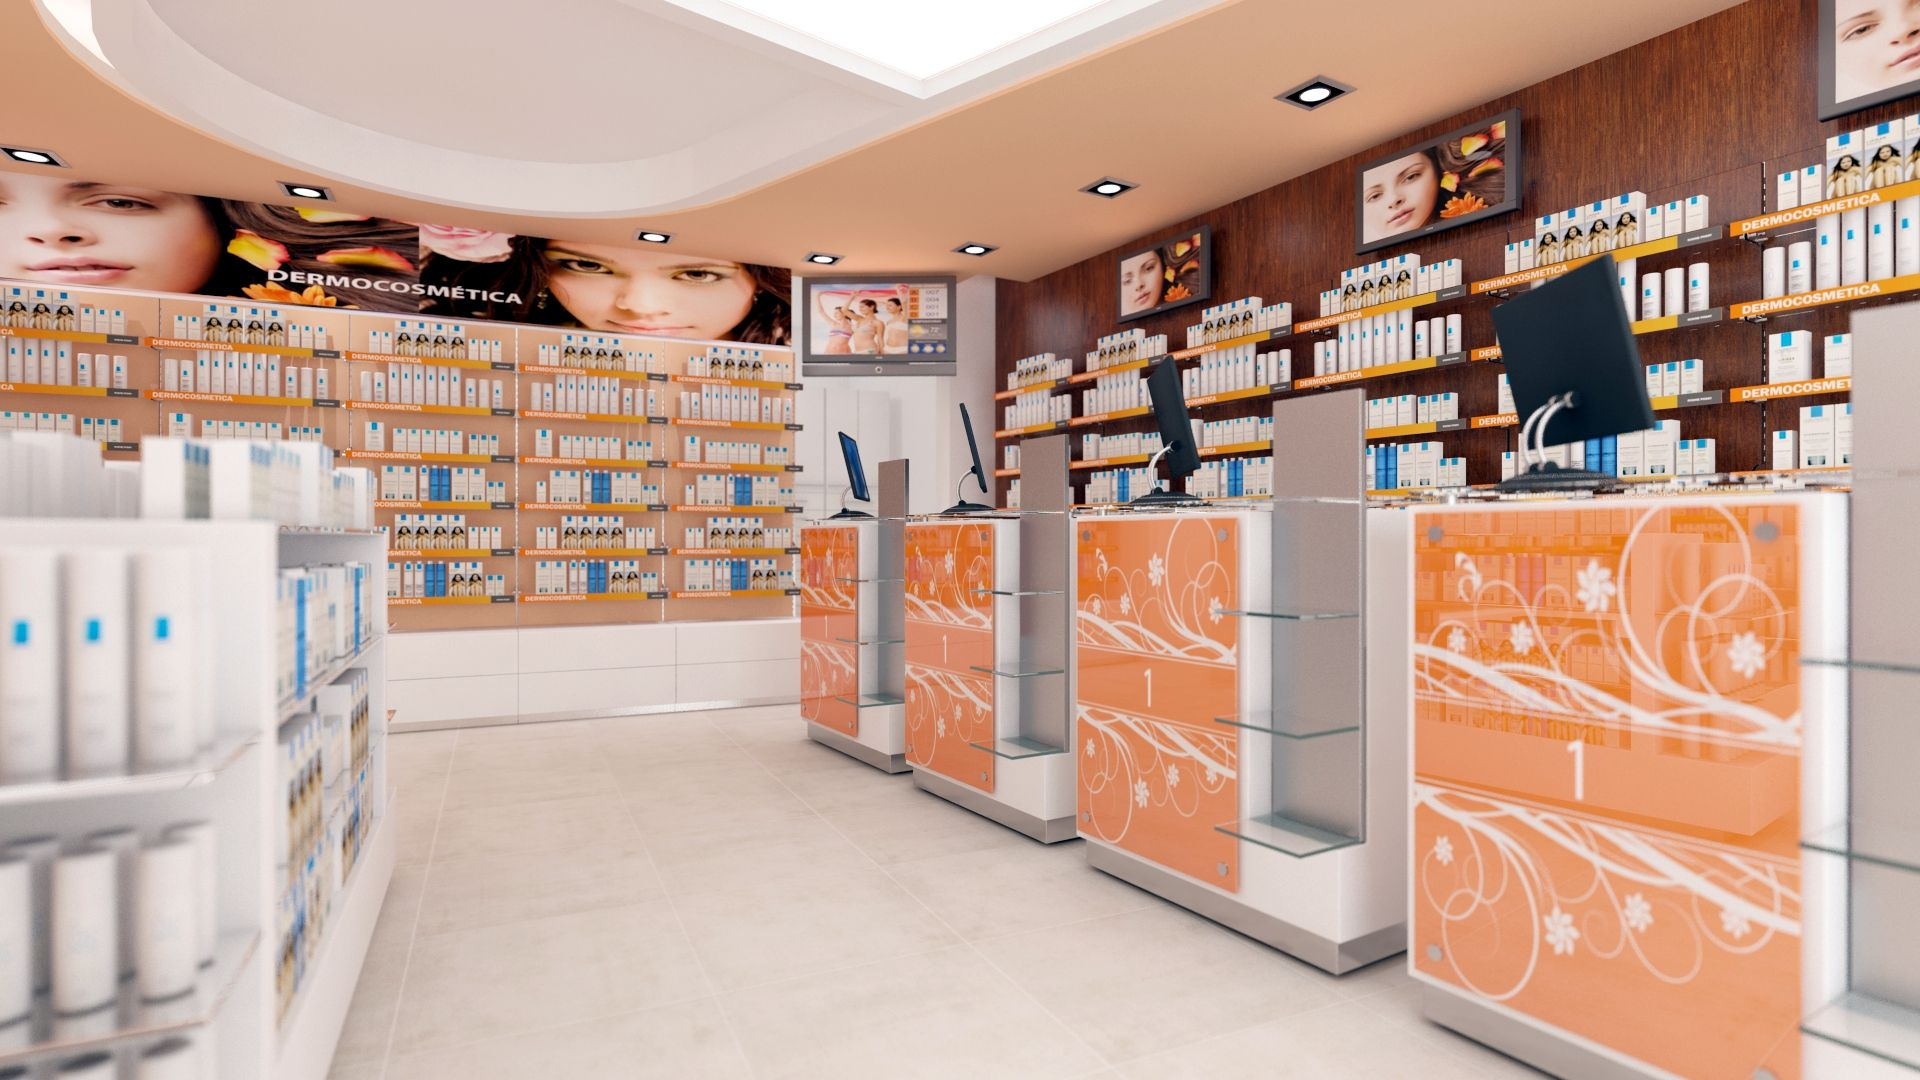 Pharmacy Design   Retail Design   Store Design   Pharmacy Shelving    Pharmacy Furniture   Rosmaninho. Pharmacy Design   Retail Design   Store Design   Pharmacy Shelving